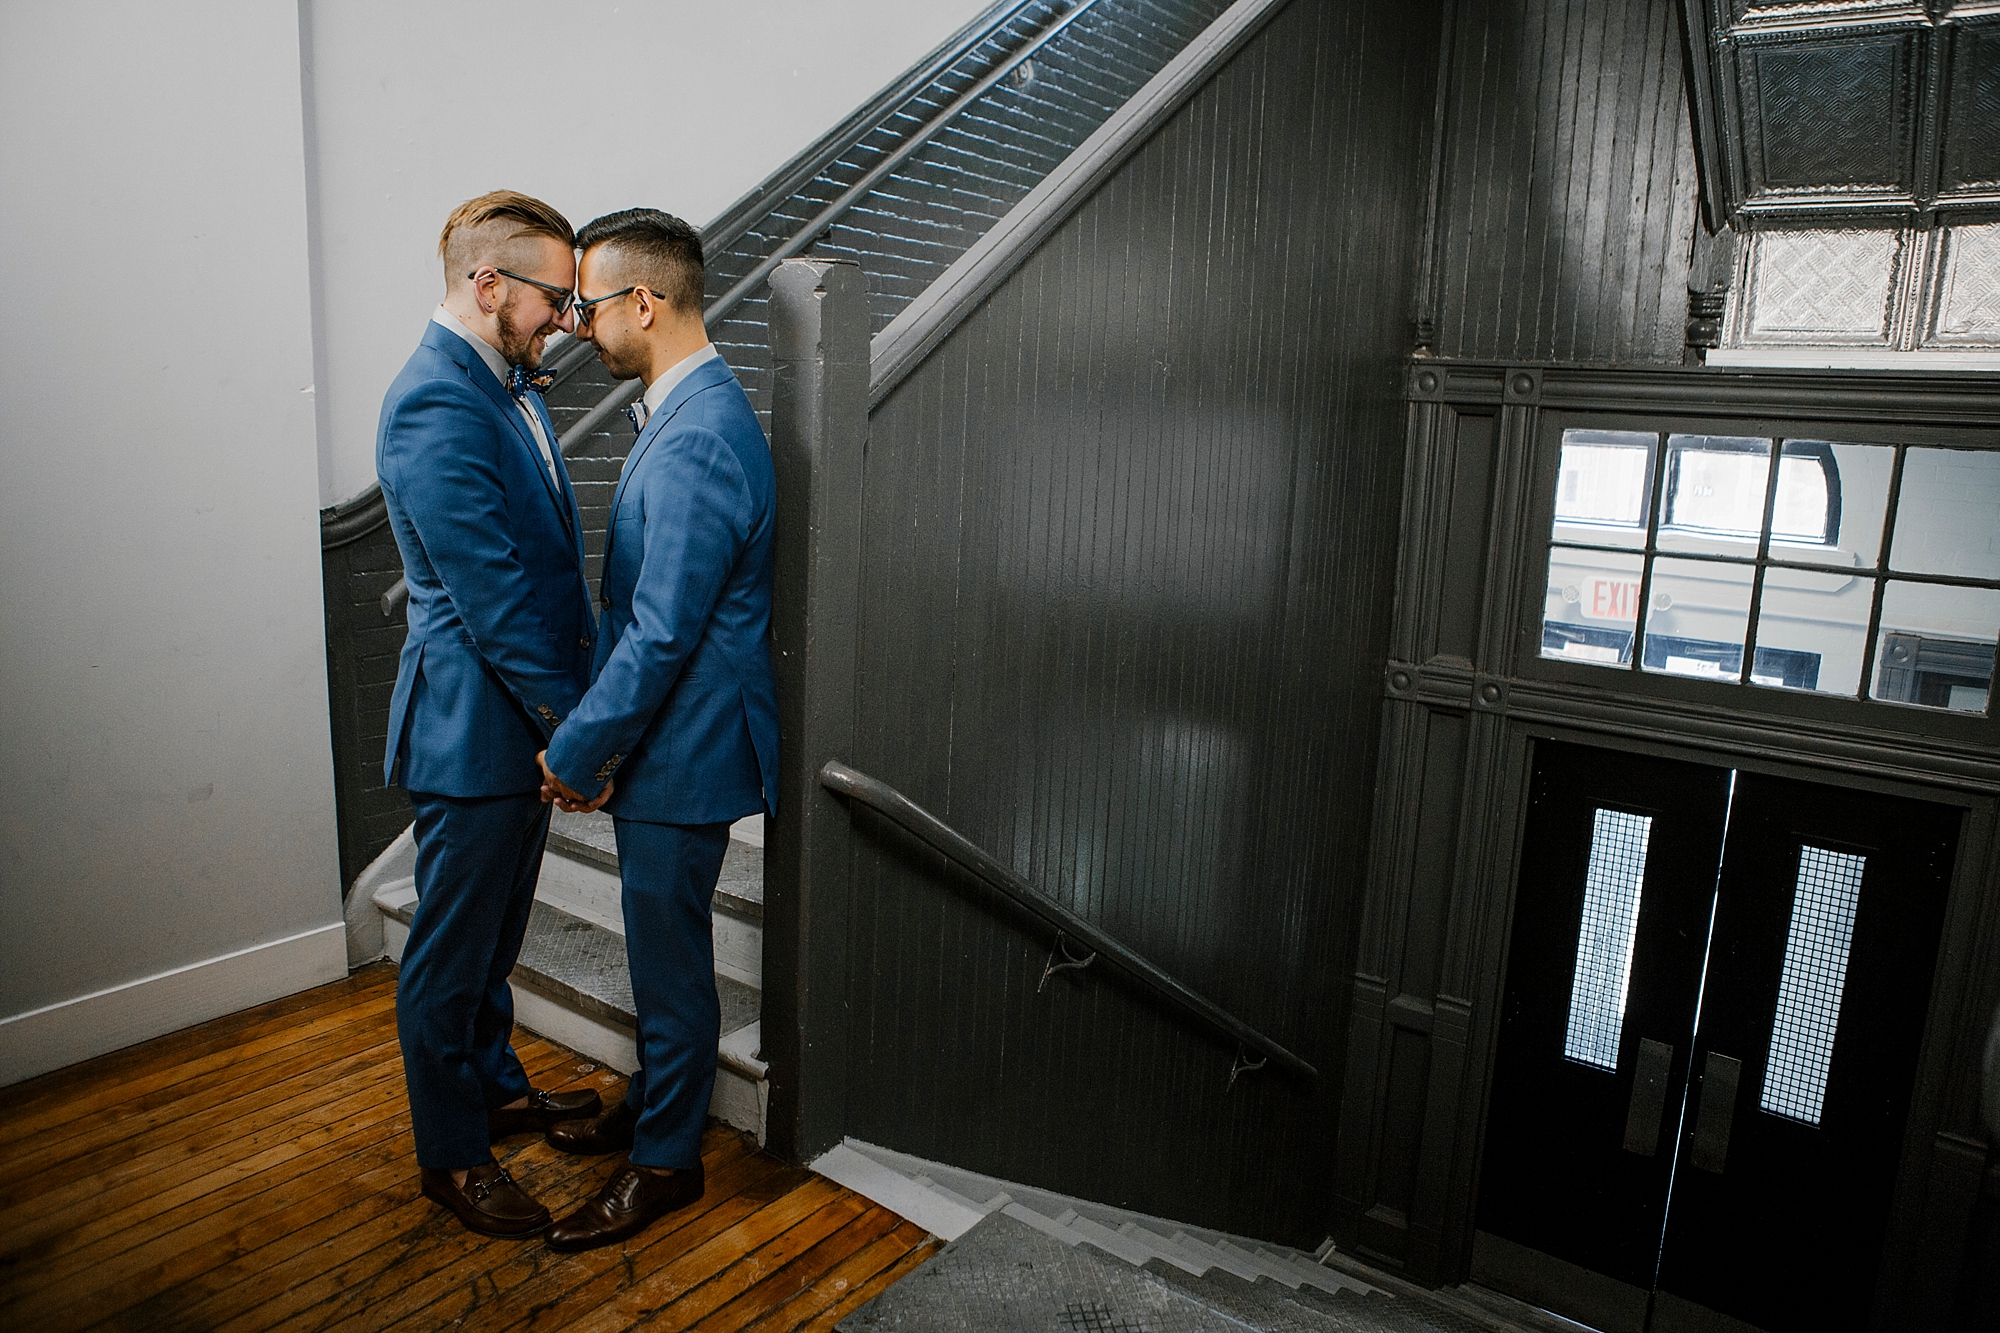 Joe_Mac_Creative_Philadelphia_Philly_LGBT_Gay_Engagement_Wedding_Photography__0119.jpg